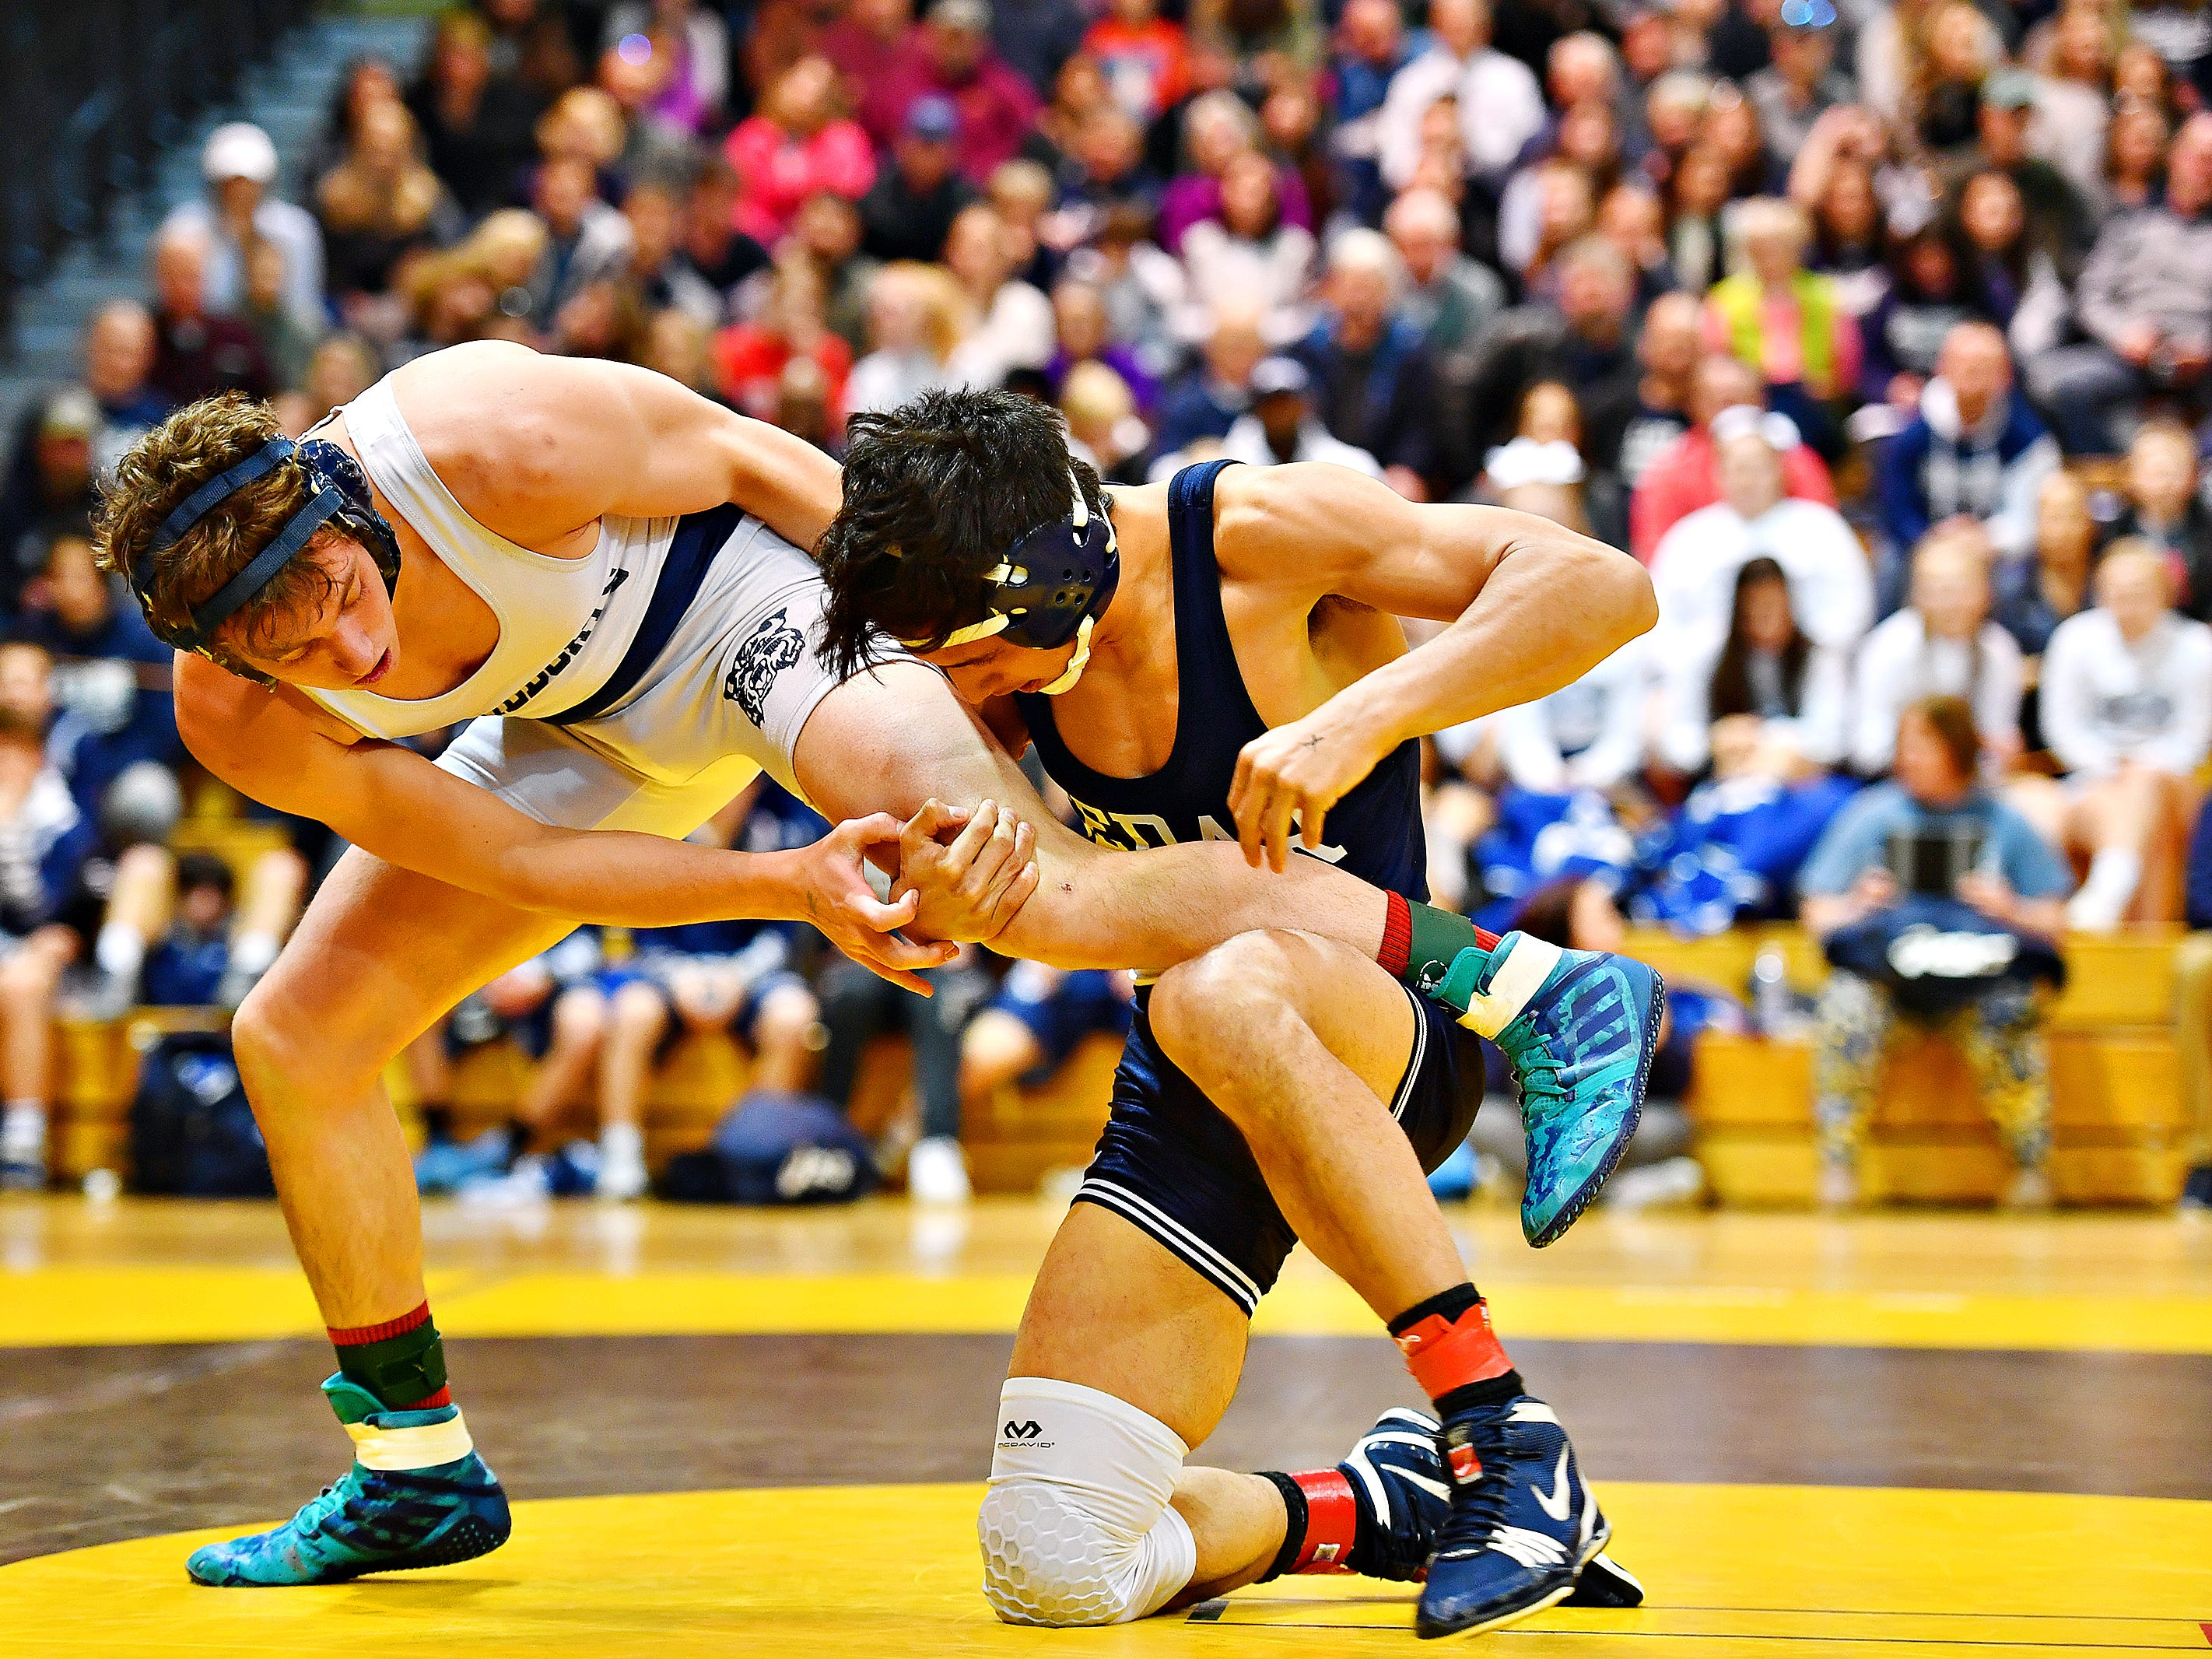 Dallastown's Hunter Sweitzer, left, wrestles Cedar Cliff's Danny Zigue in the 152 pound weight class during District 3, Class 3A wrestling championship action at Milton Hershey High School in Hershey, Saturday, Feb. 2, 2019. Dawn J. Sagert photo